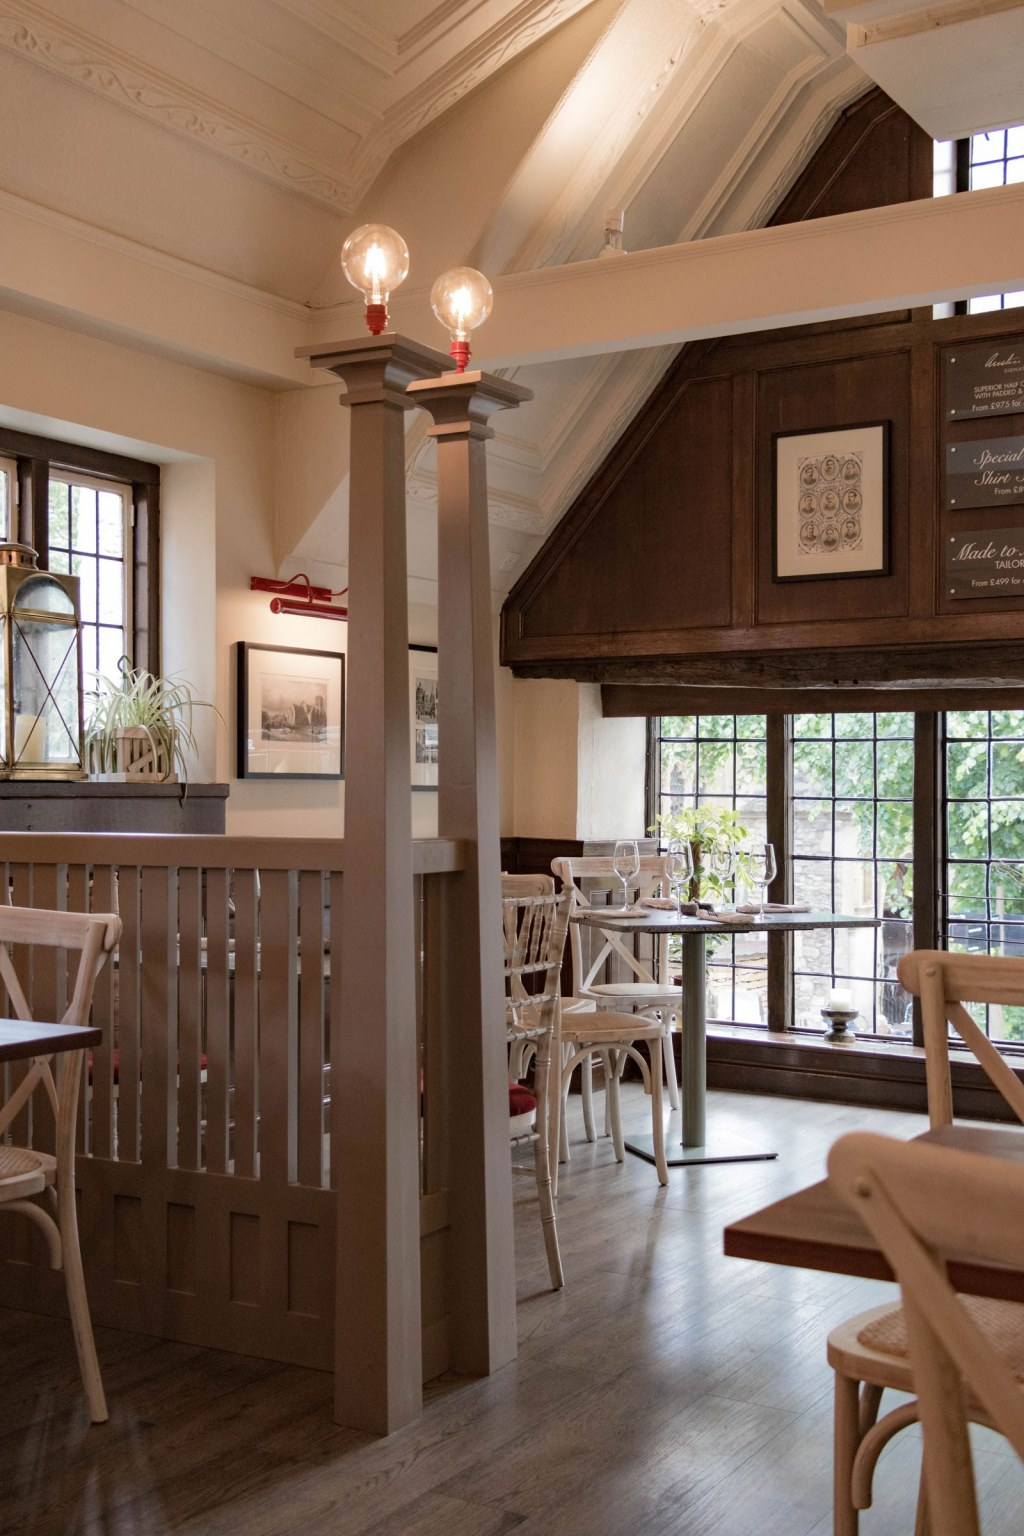 The Plough, Central Oxford / First floor bespoke joinery dividers, all in the Arts & Crafts style